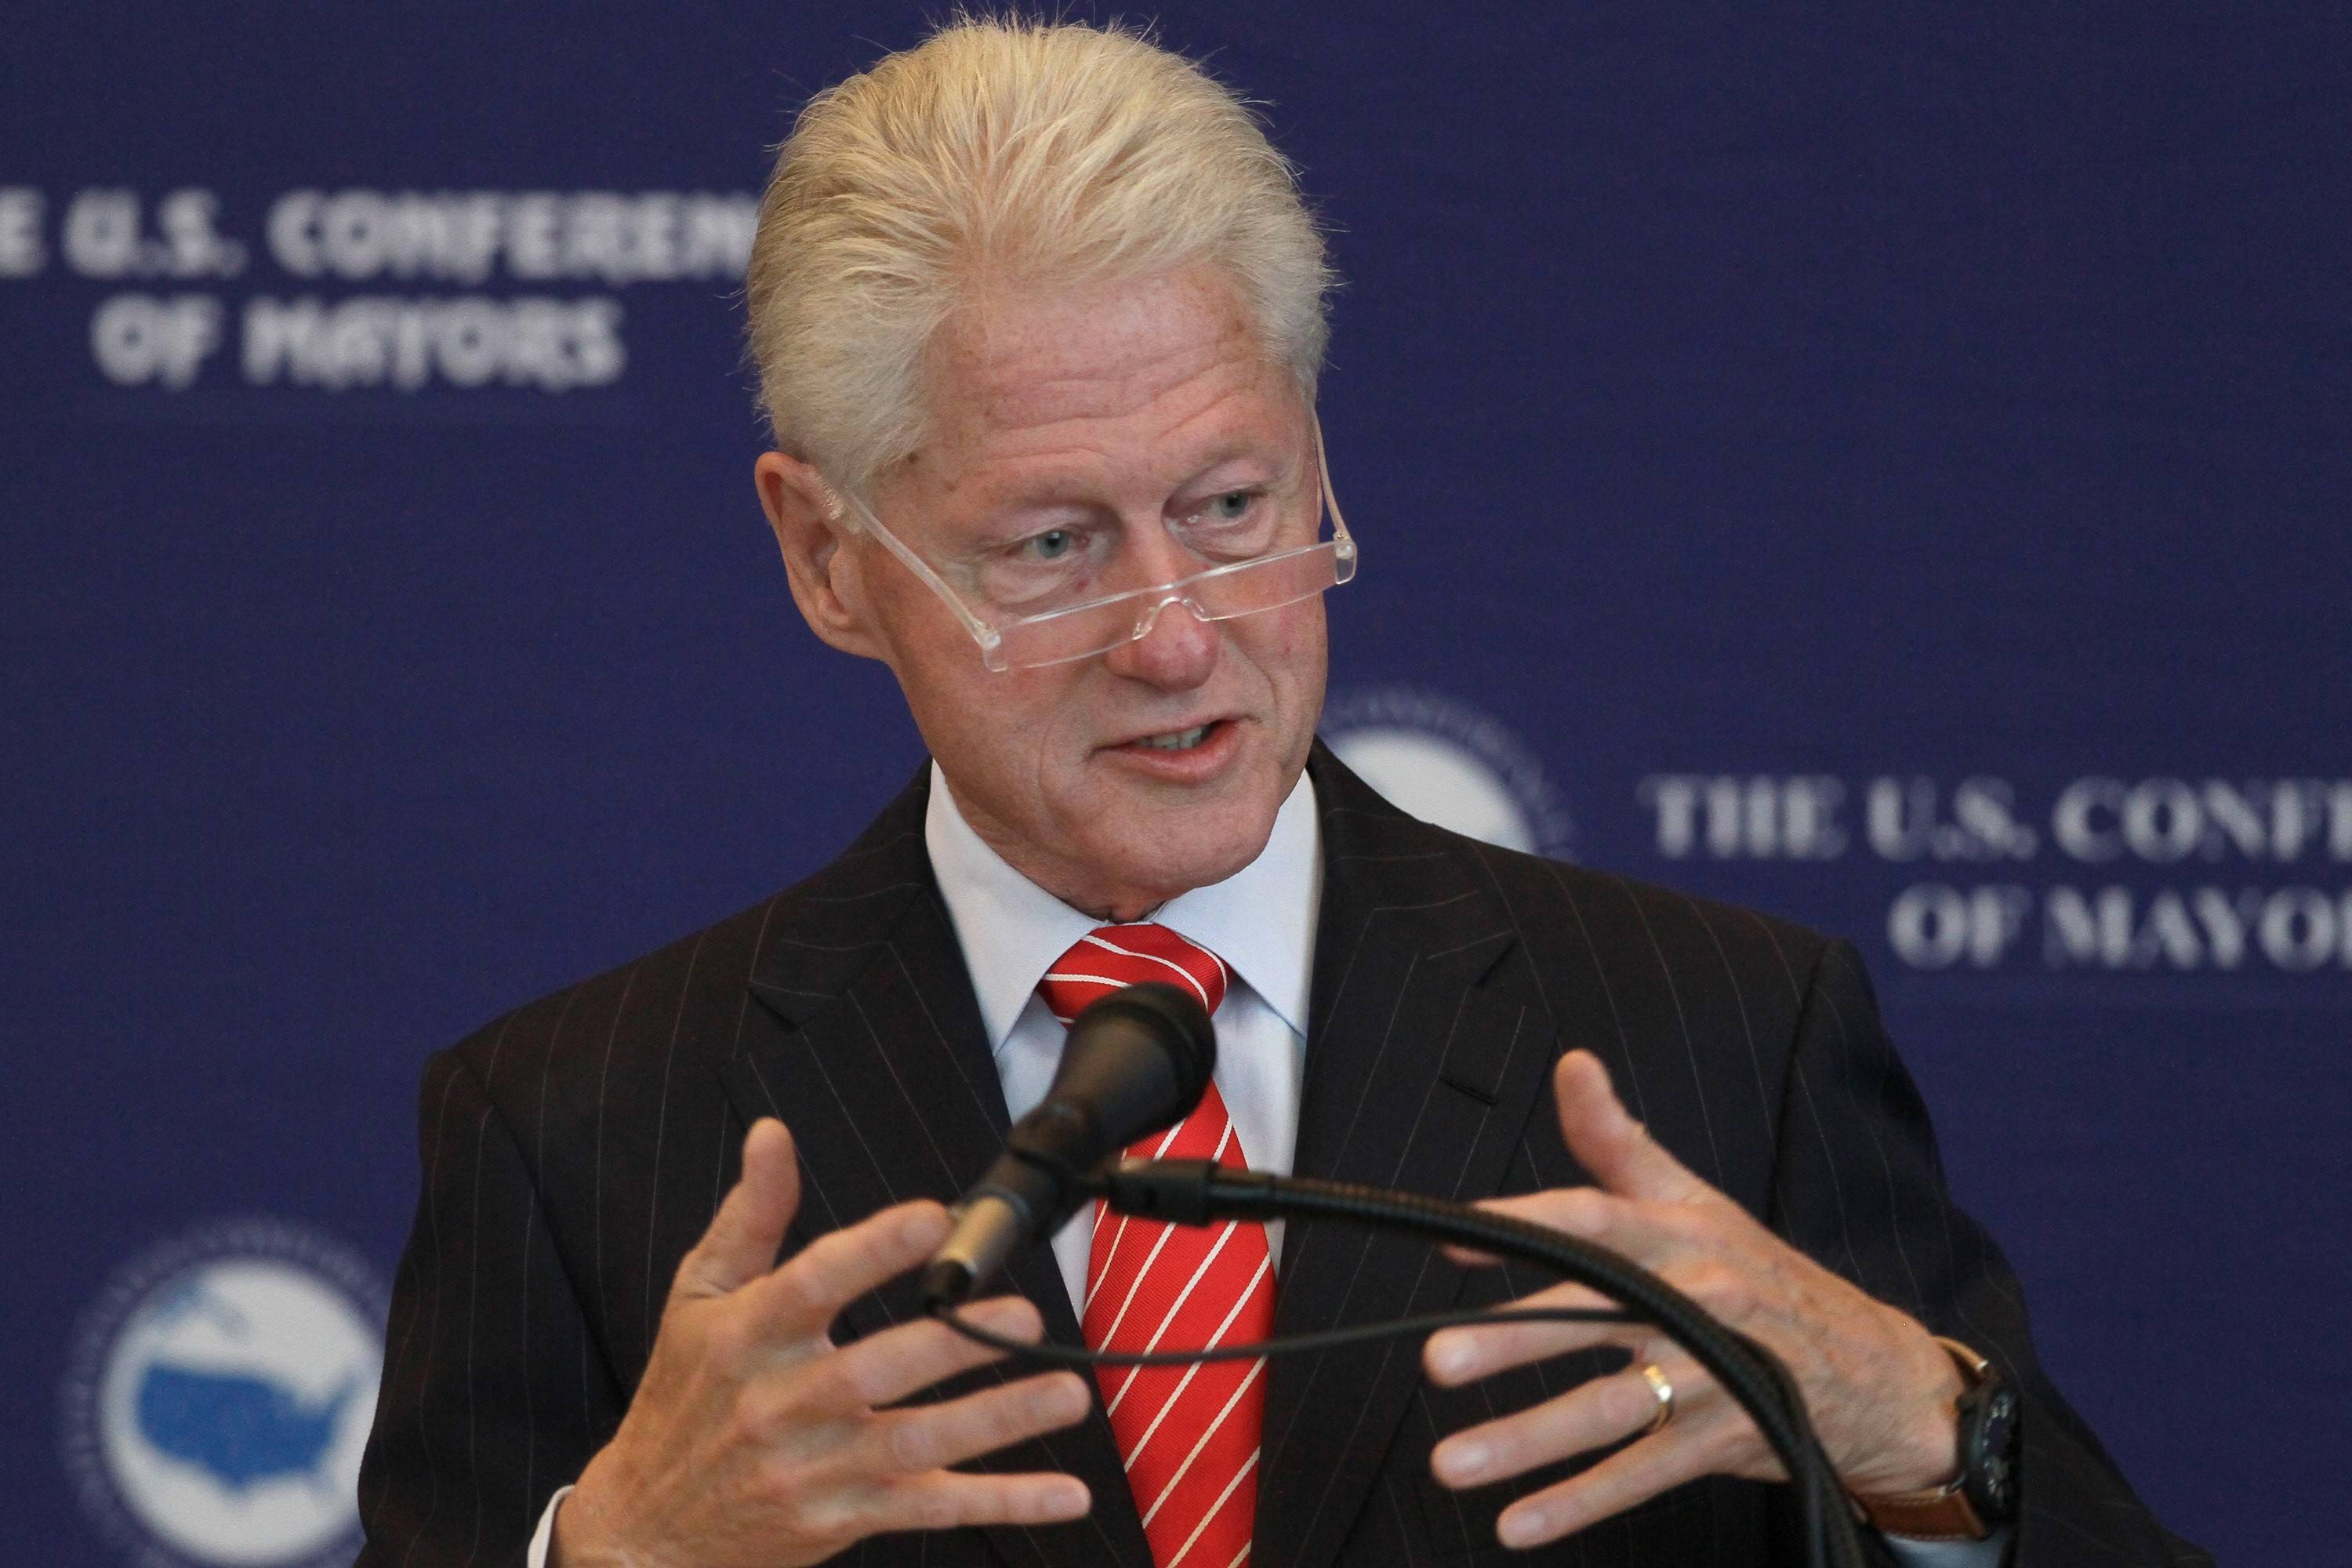 Former President Bill Clinton speaks to a meeting of the U.S. Conference of Mayors at the Clinton Presidential Library in Little Rock, Ark., earlier this month. He'll be in Chicago Tuesday.